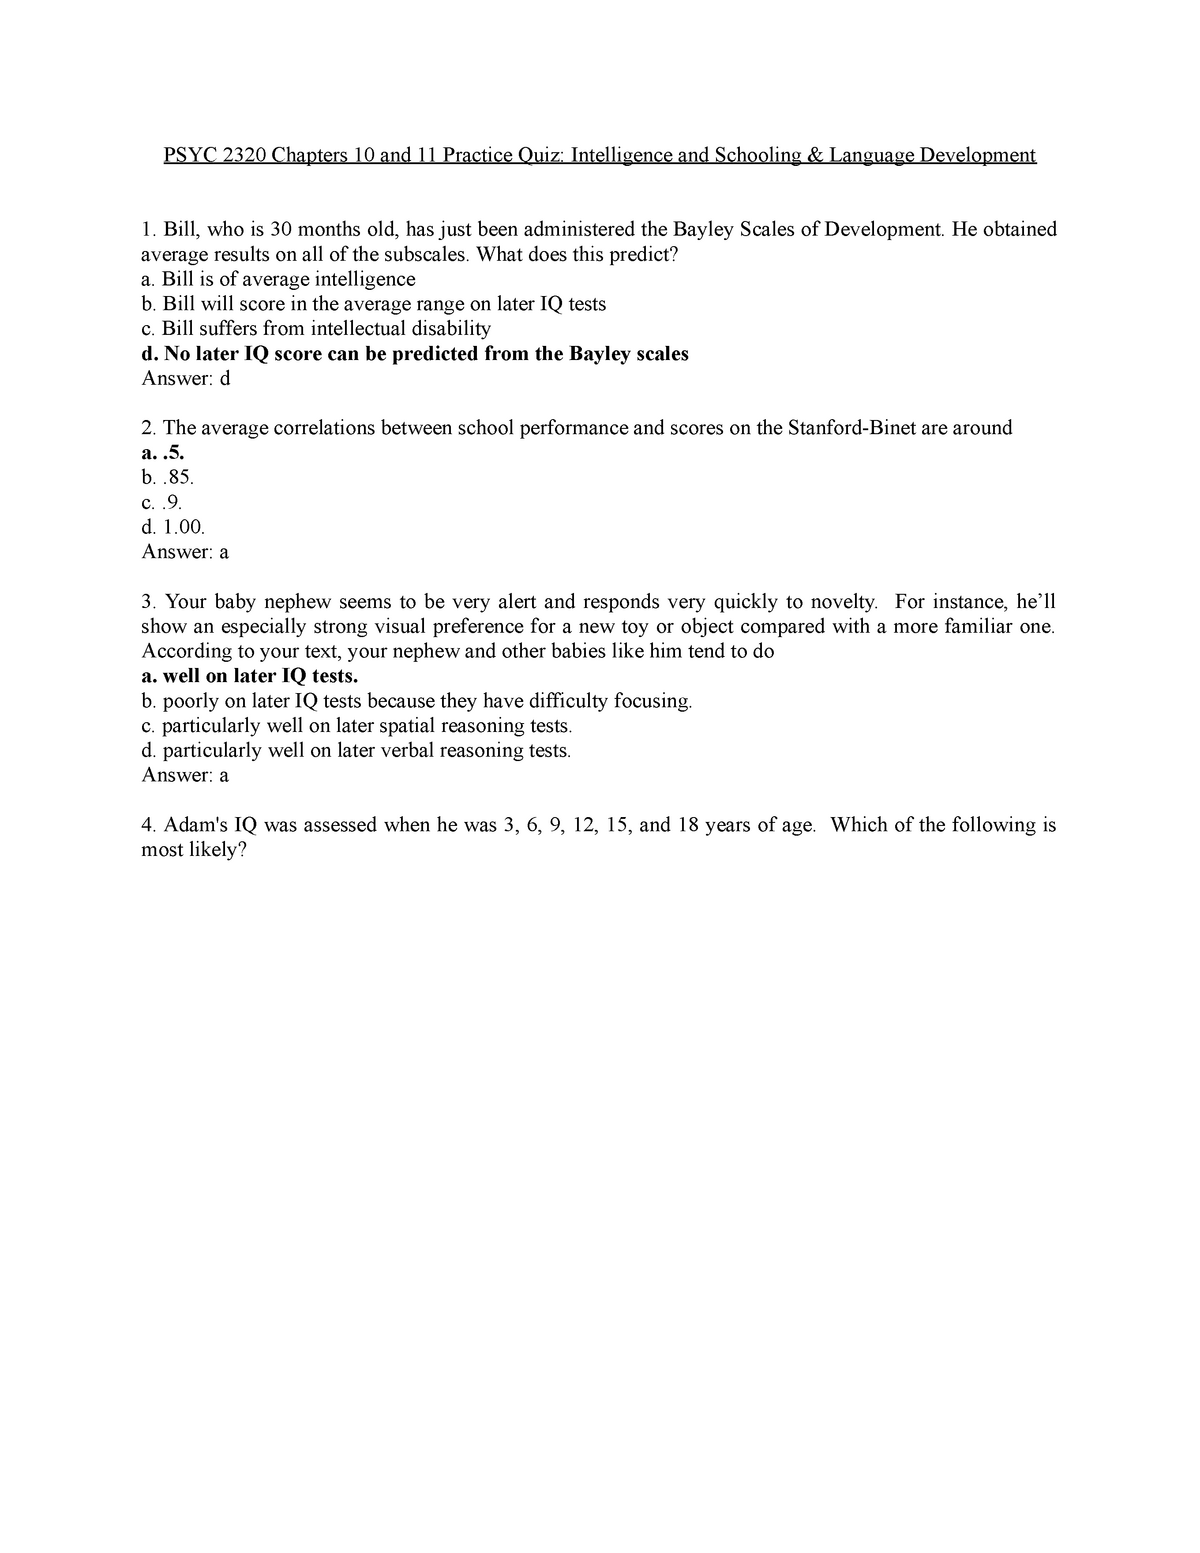 Chapters 10 and 11 quiz answer key - PSYC 2320